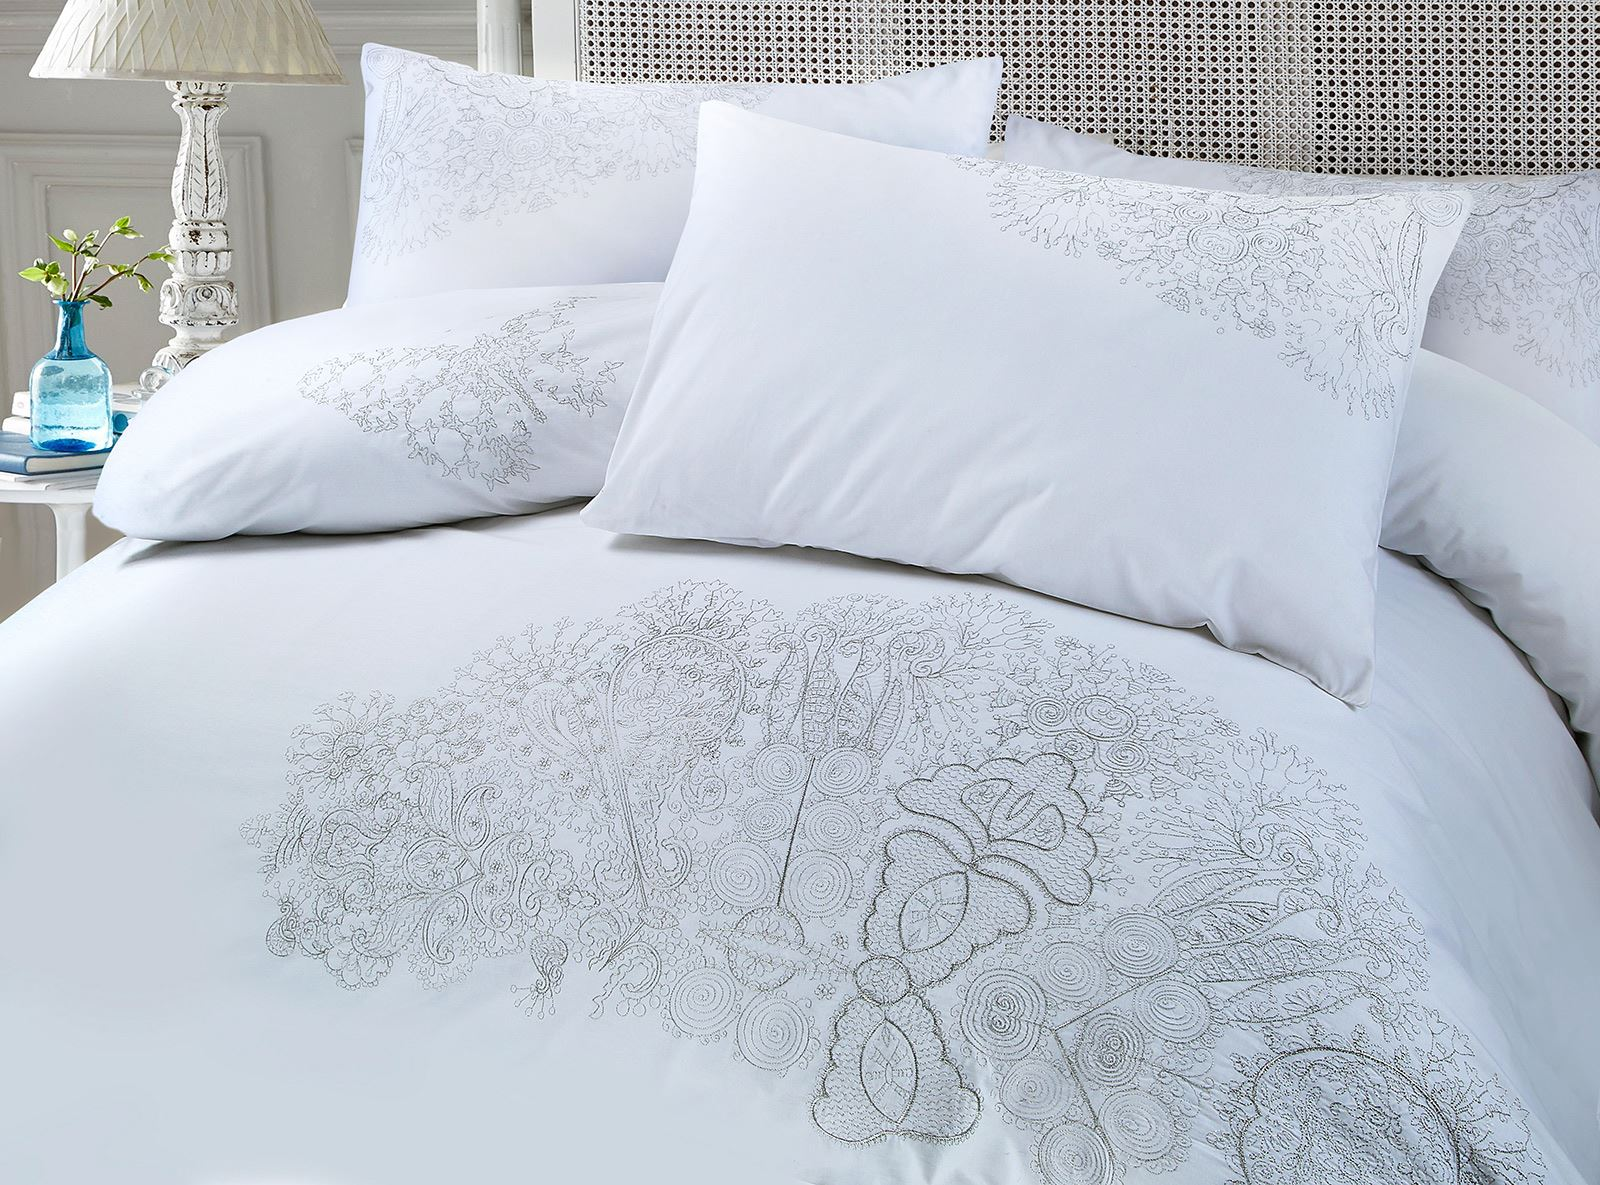 Chloe-Luxury-100-Cotton-Silver-Embroidery-Embroidered-Duvet-Cover-Bedding-Set thumbnail 8